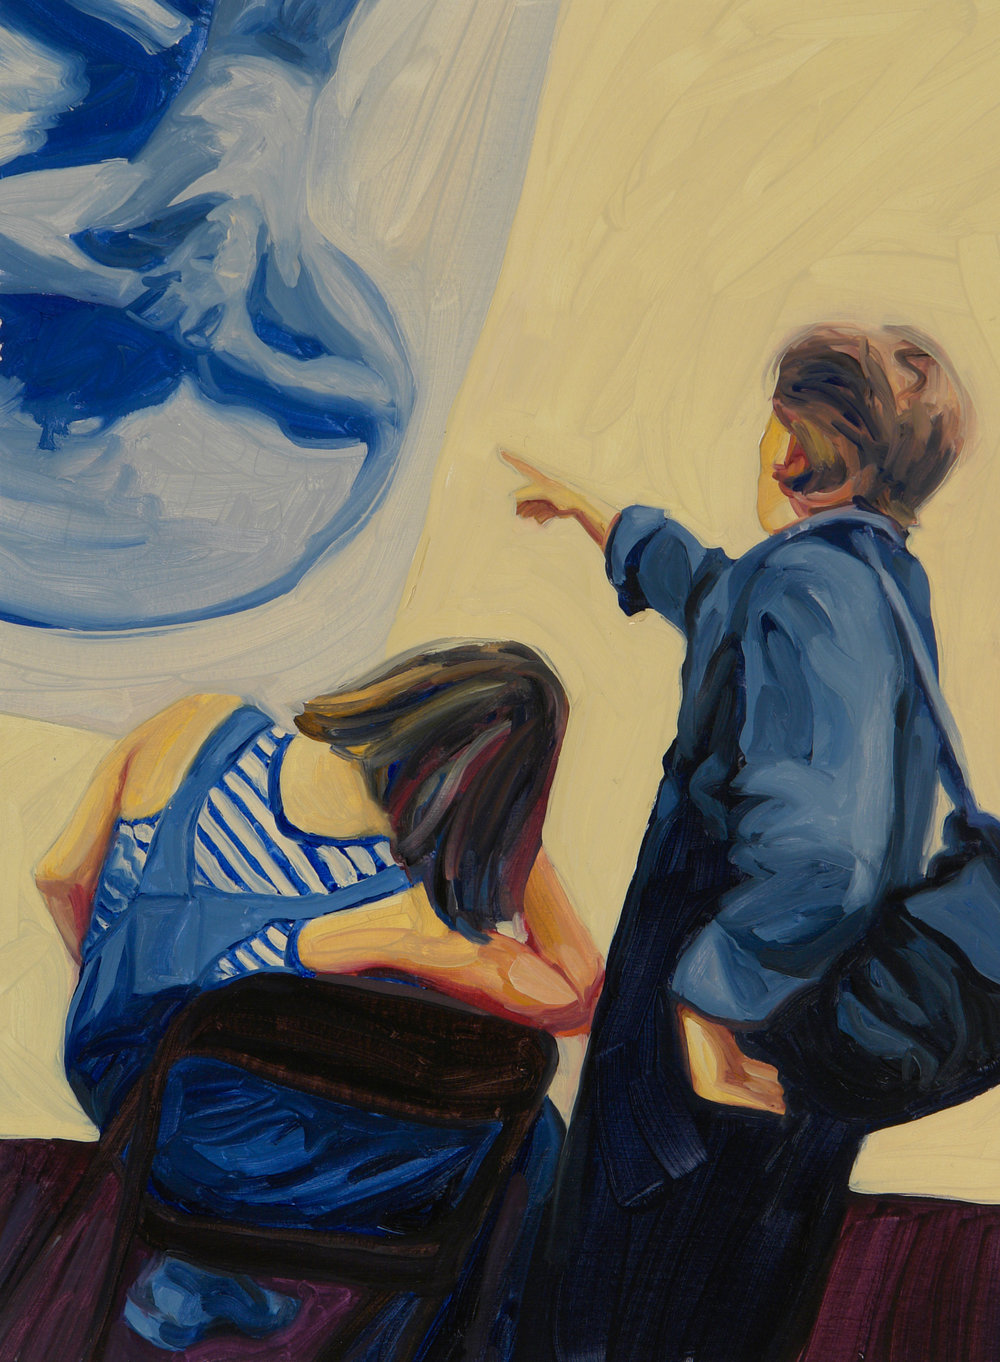 Looking at Art: Kristin Copham and Elizabeth Erickson, Women's Art Institute 2004, Patricia Olson, 2005, oil on ragboard, 13¼ x 9 ¾ inches(Image Source: Patricia Olson)